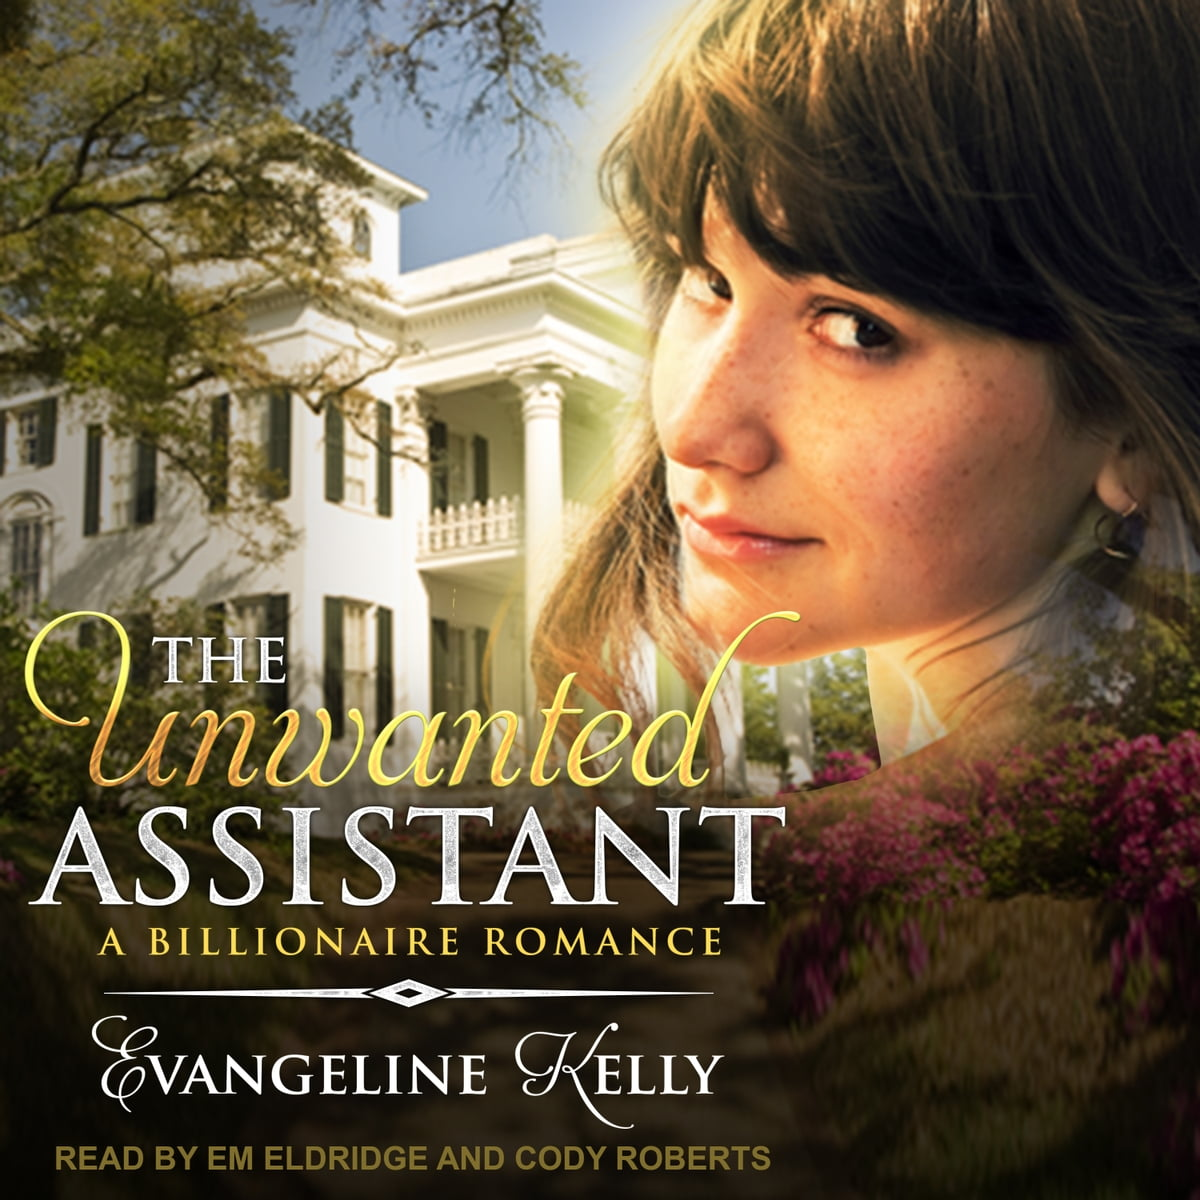 The Unwanted Assistant audiobook by Evangeline Kelly - Rakuten Kobo